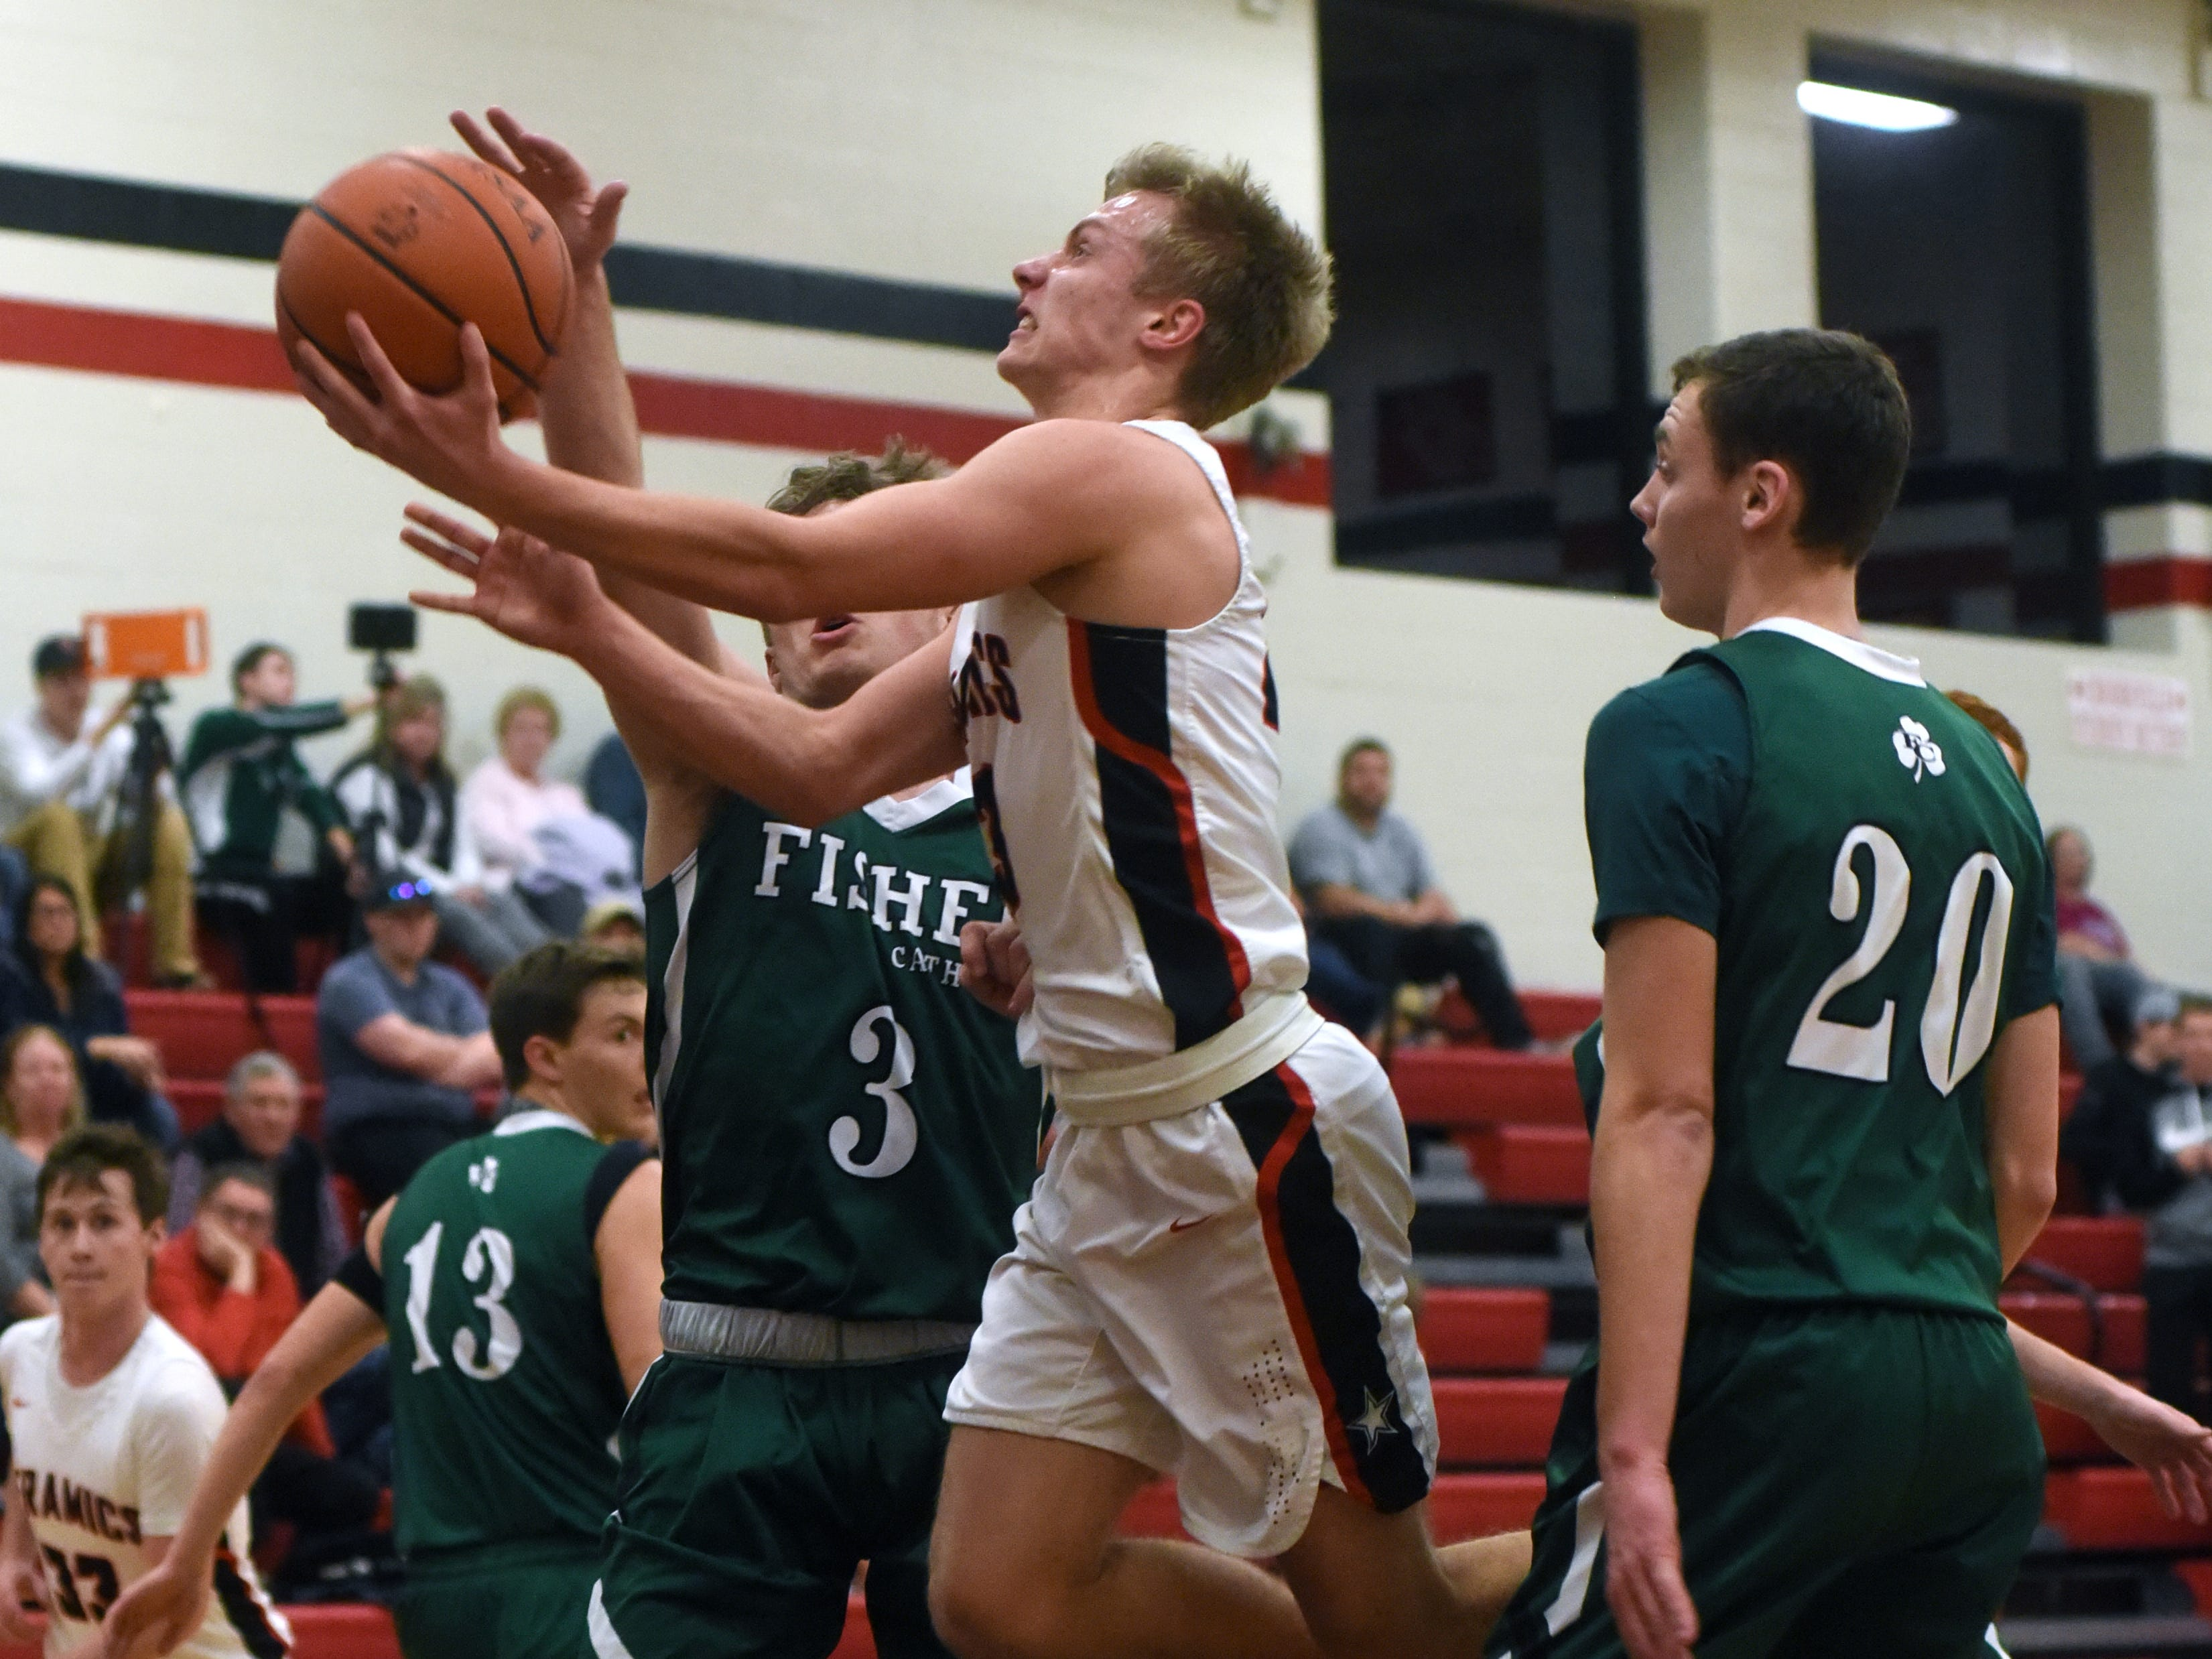 Caden Sparks goes in for a layup against Fisher Catholic on Monday night in McLuney.